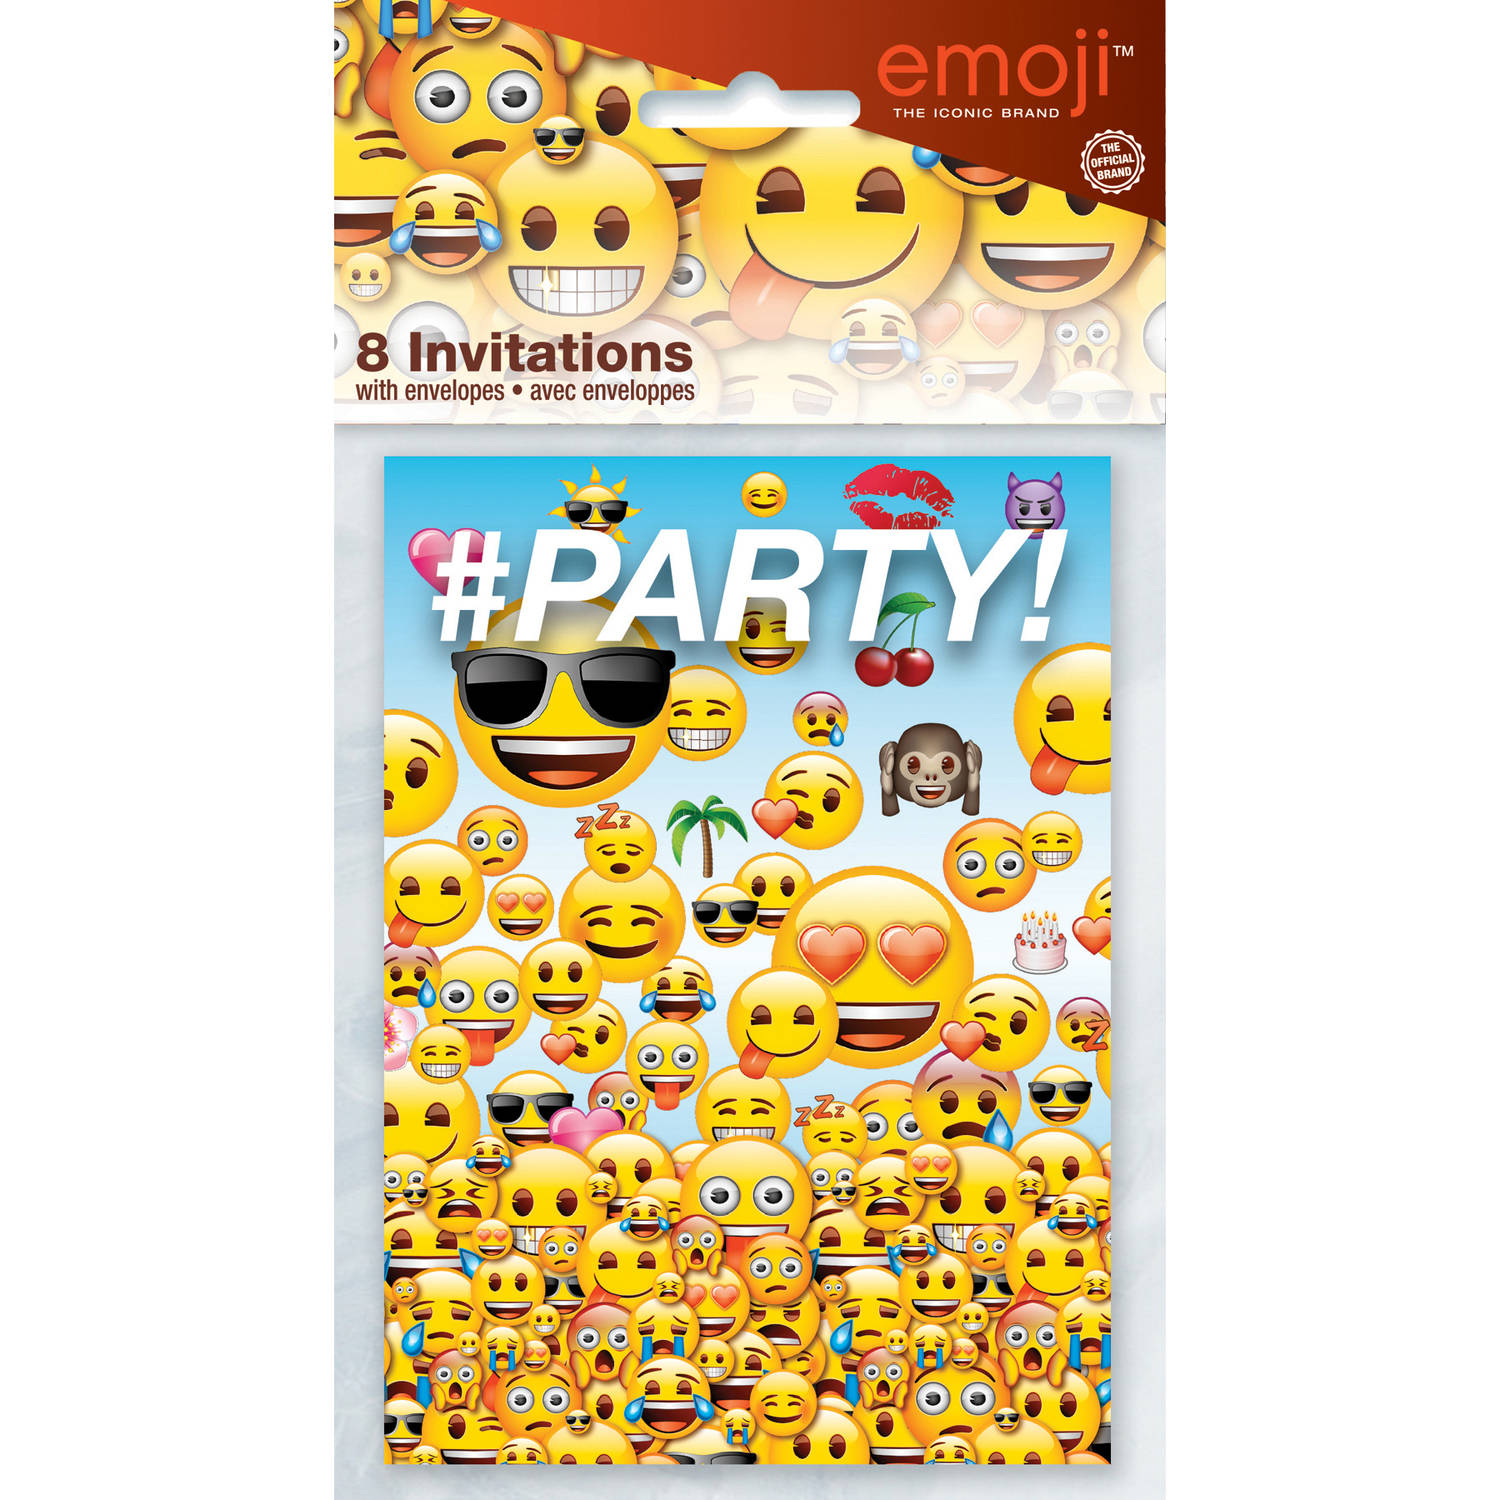 walmart photo birthday invitations ; Walmart-Birthday-Invitations-for-the-perfection-of-your-idea-in-organizing-your-invitation-becomes-more-fun-and-special-9